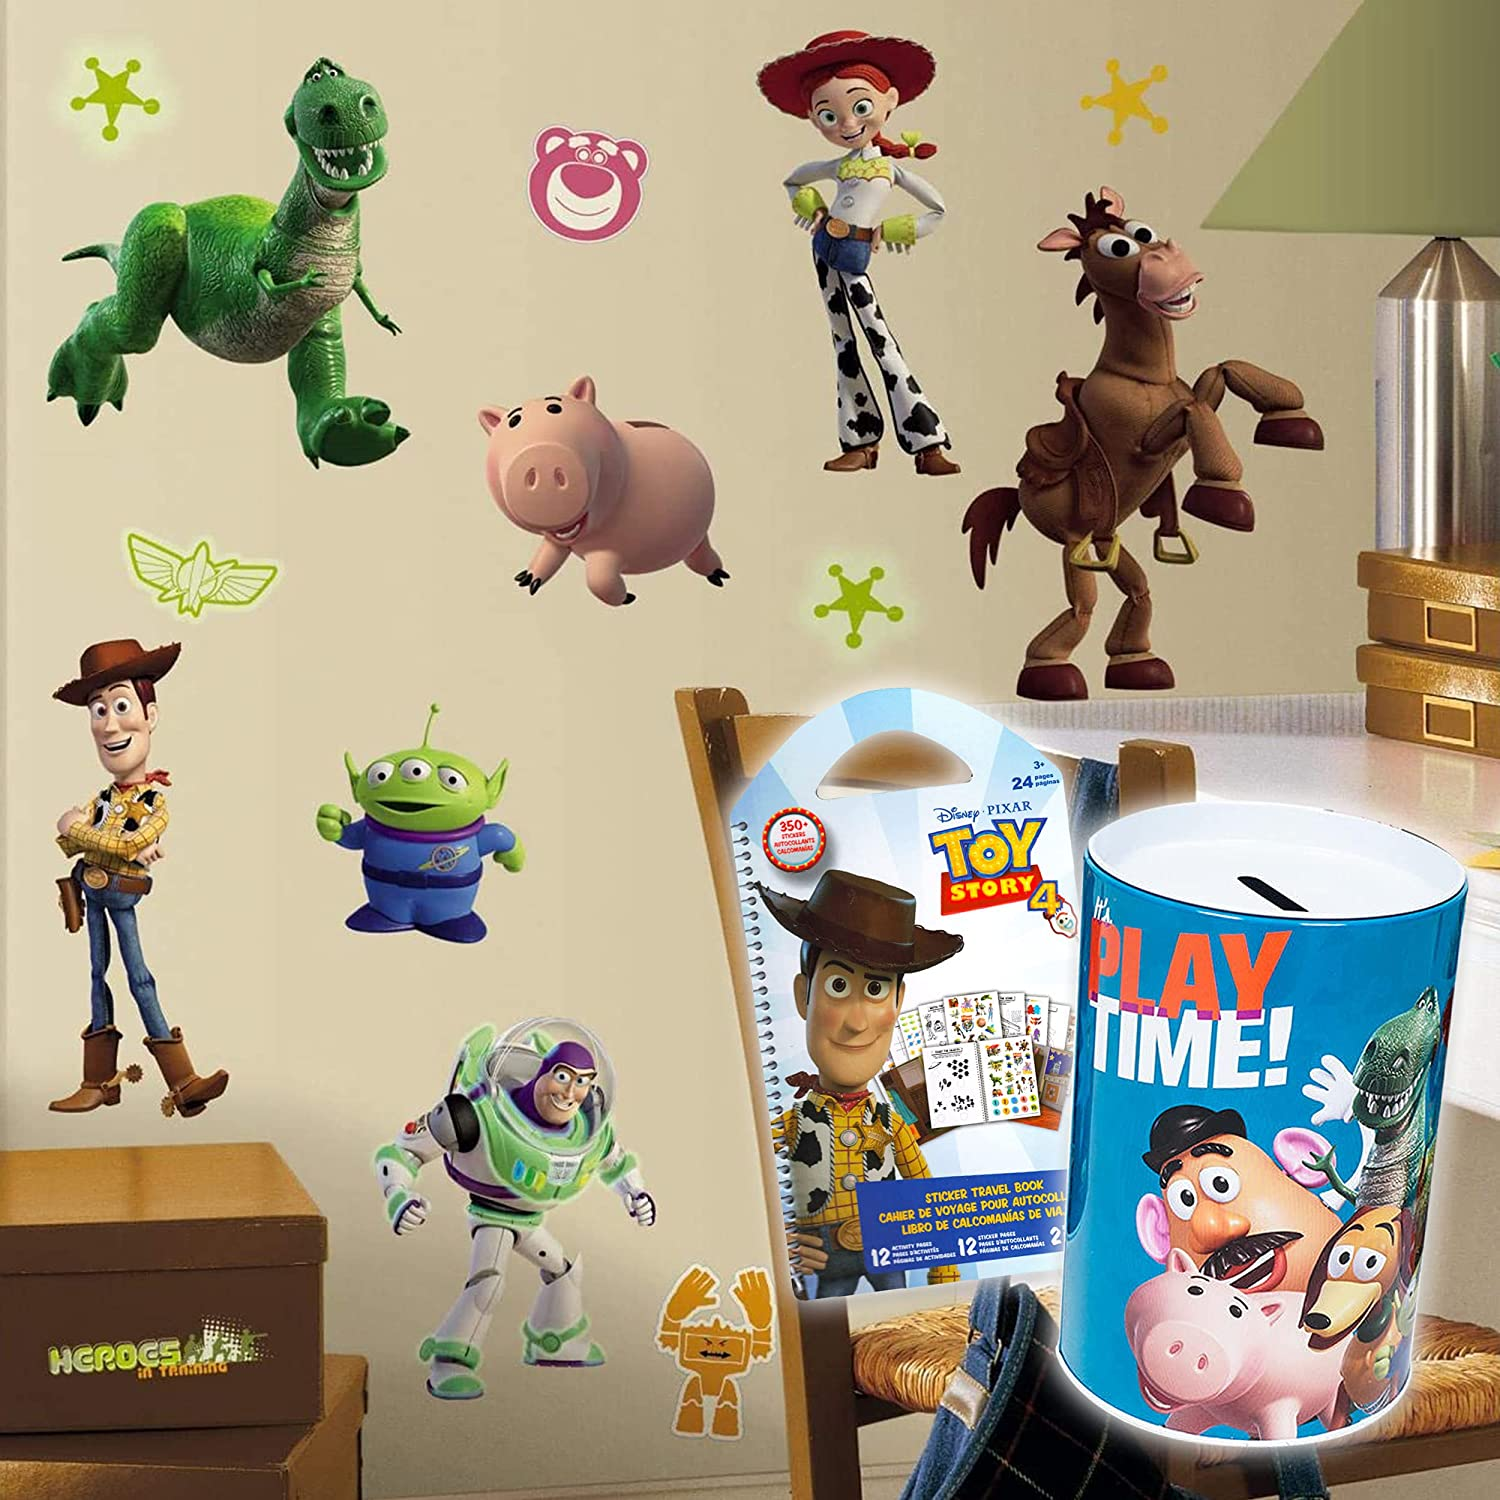 RoomMates Toy Story Wall Decals Bundle ~ 34 Pc Glow in The Dark Toy Story Room Decor Toy Story Decal Set with Toy Story Piggy Bank and 350+ Stickers! (Toy Story Room Decorations)